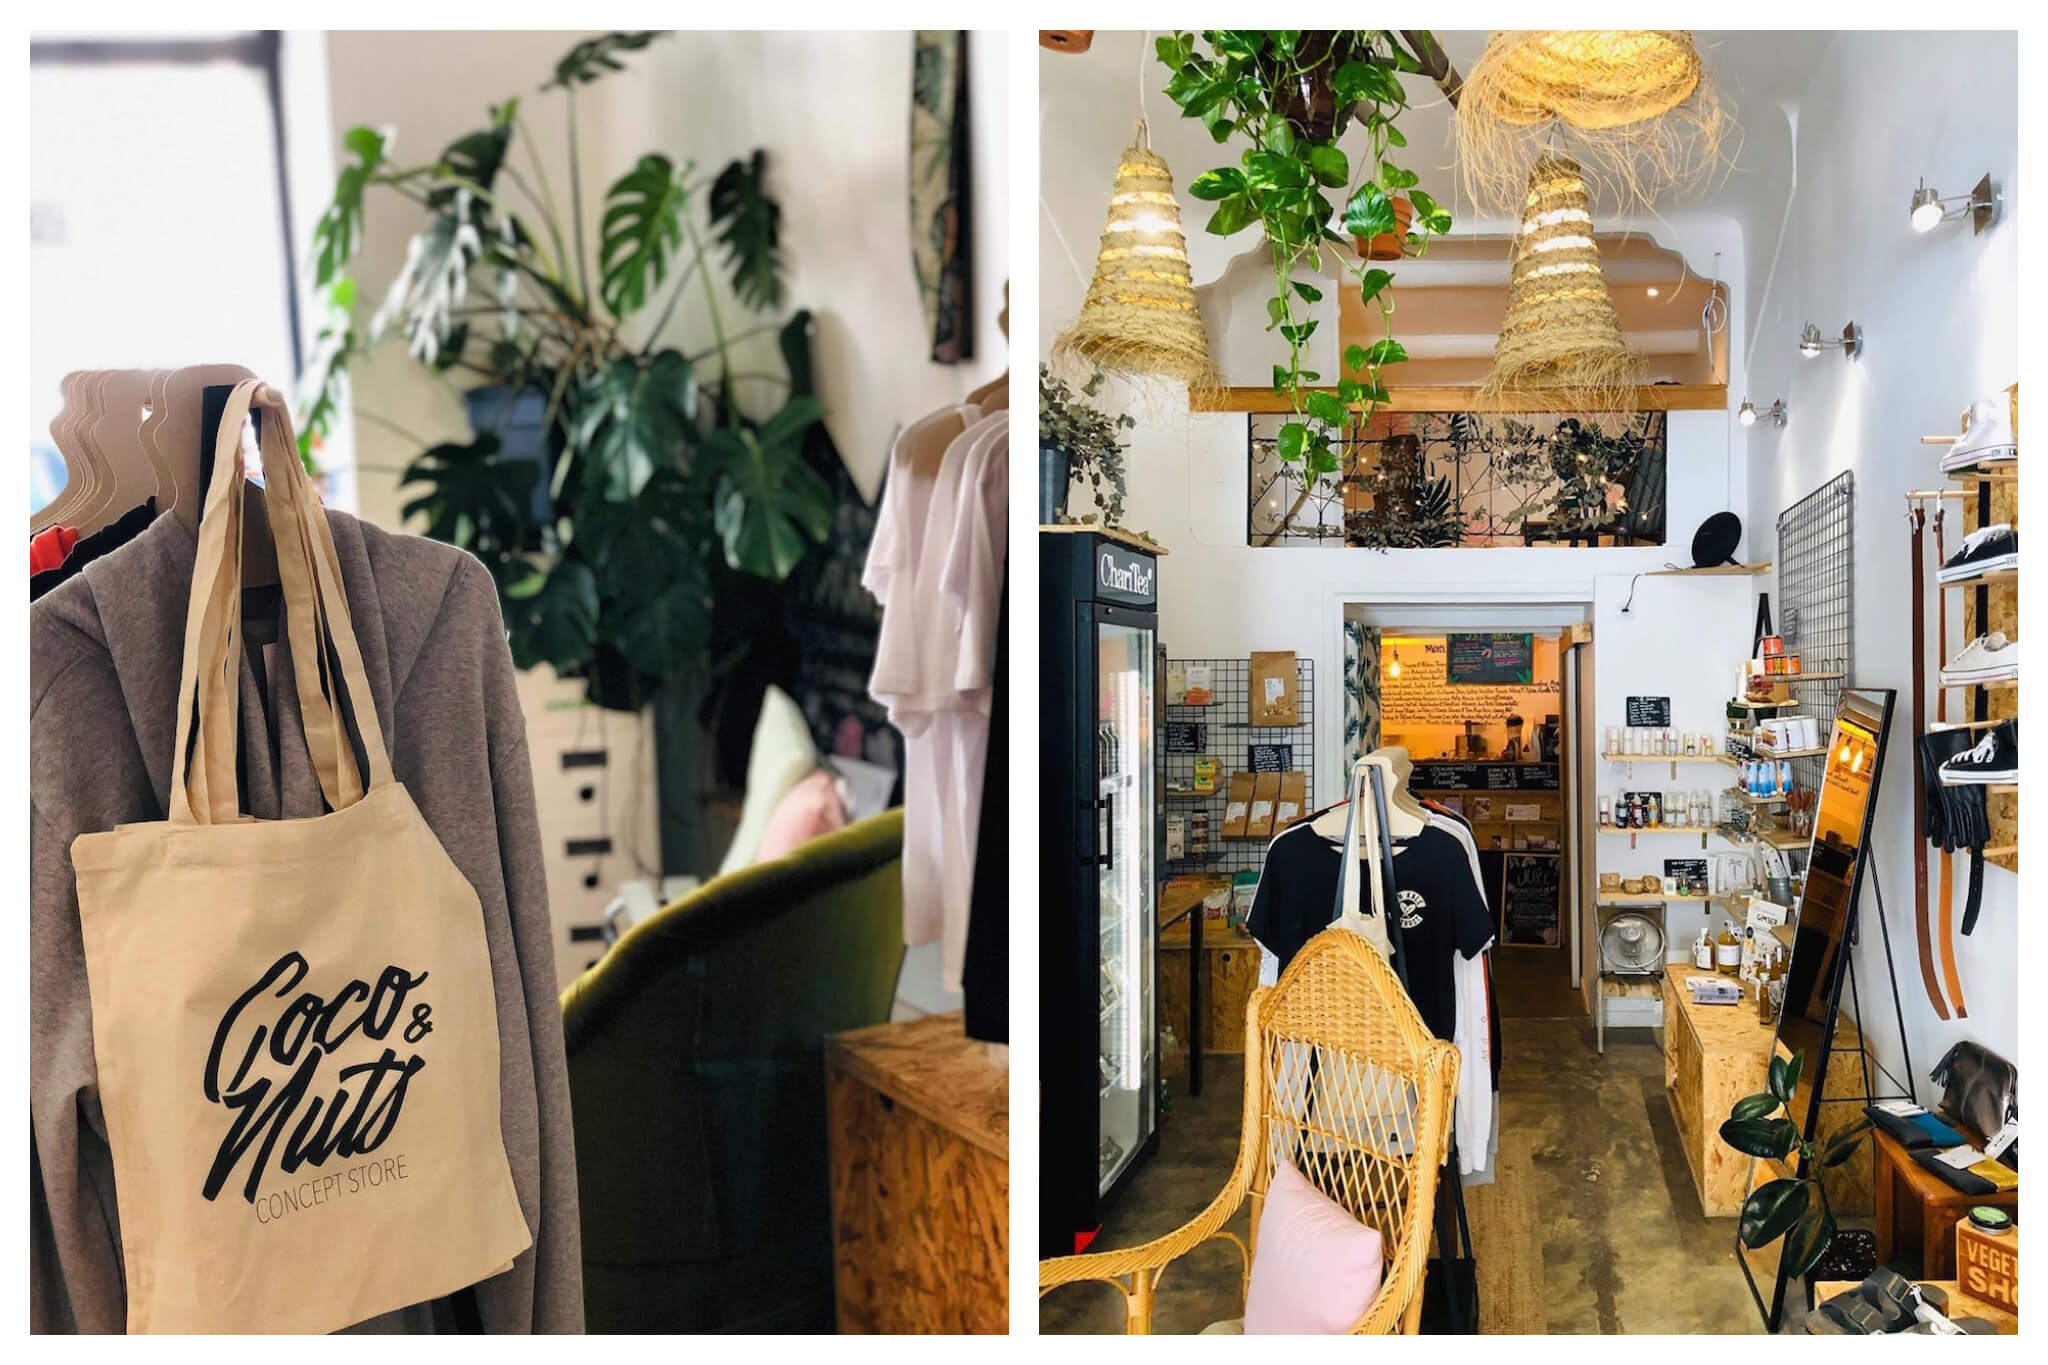 Left: a close up view of merchandise in Coco and Nuts Marseille shop, including a tote bag, t-shirts and a plant. Right: Another view of the shop's interior but from further away.